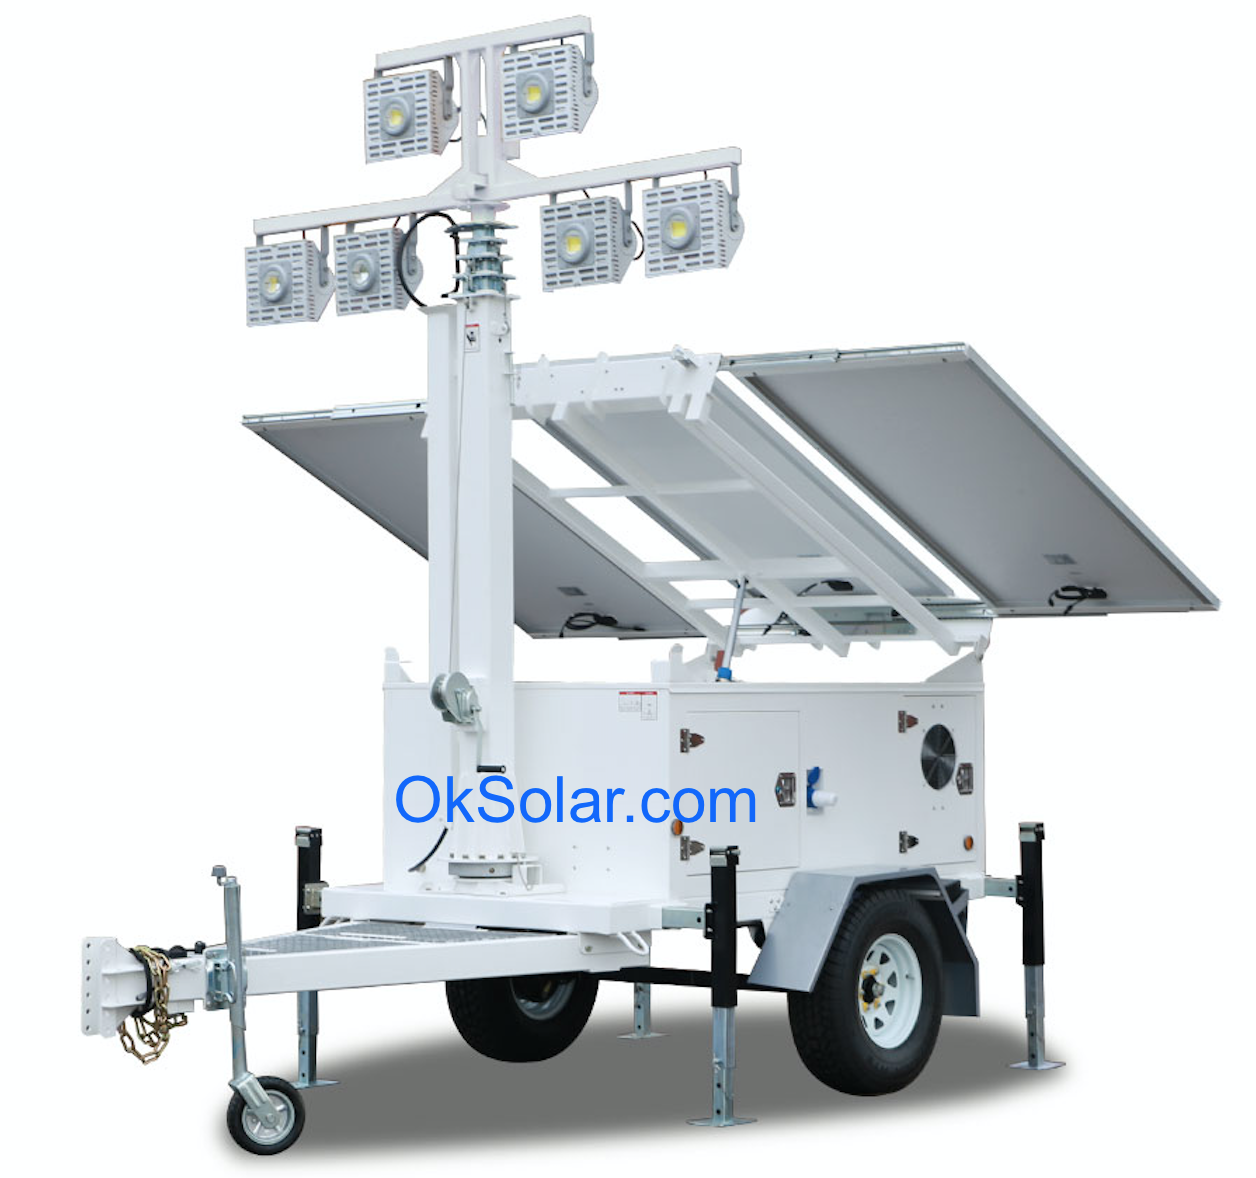 Light Tower United Rentals: Disaster Relief Portable Solar Light Tower